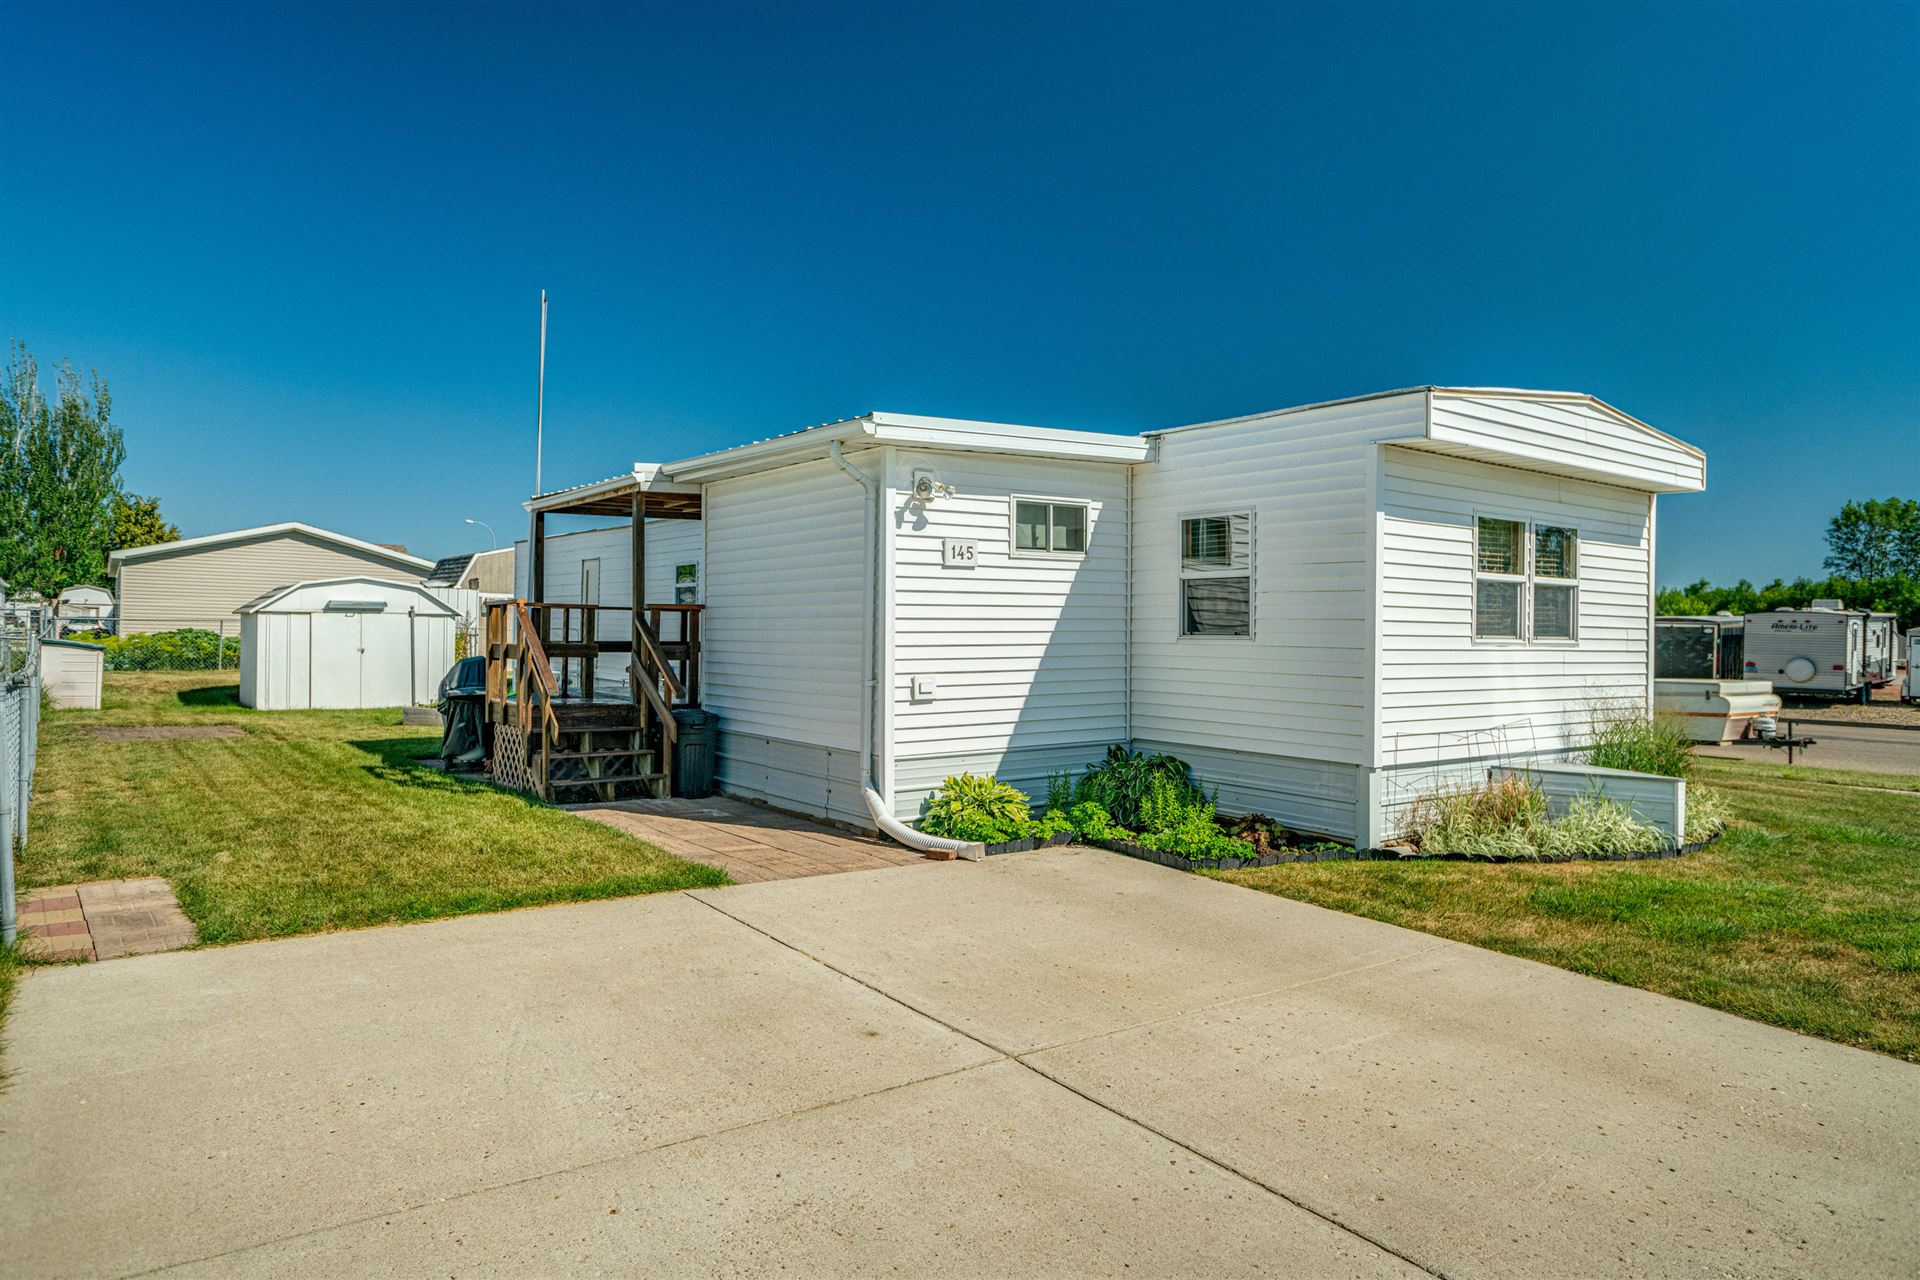 145 Georgia Street, Bismarck, ND 58504 - #: 409645